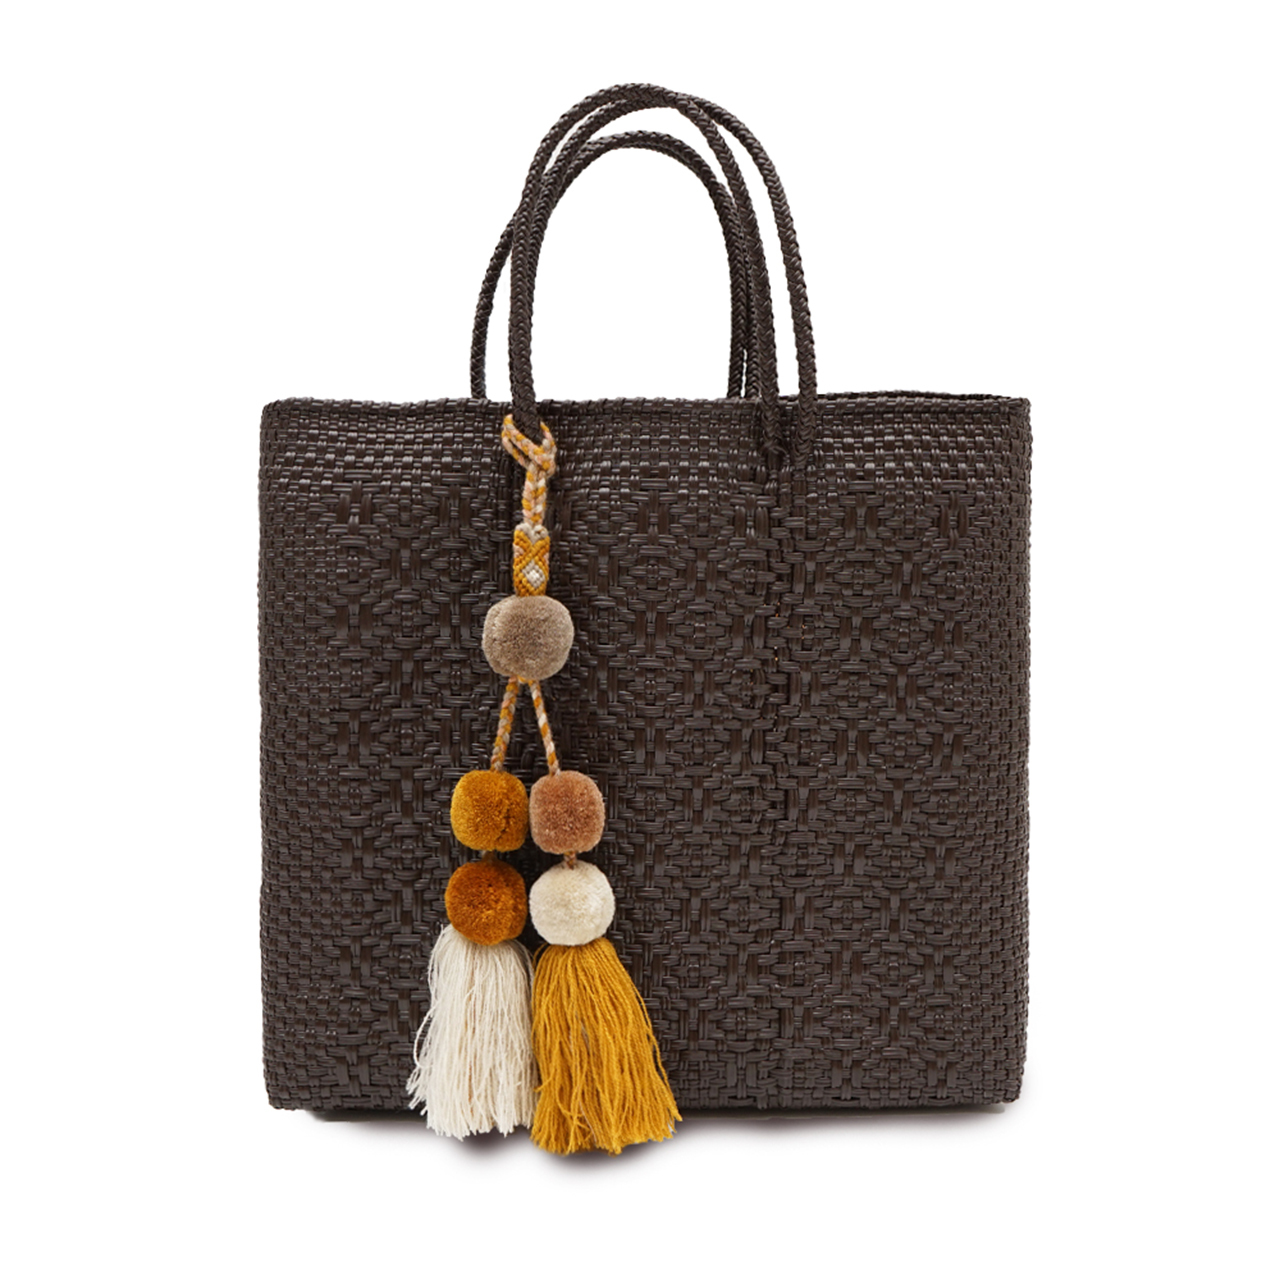 MERCADO BAG ROMBO with POMPON - BROWN(M) with YELLOWBEIGE MIX